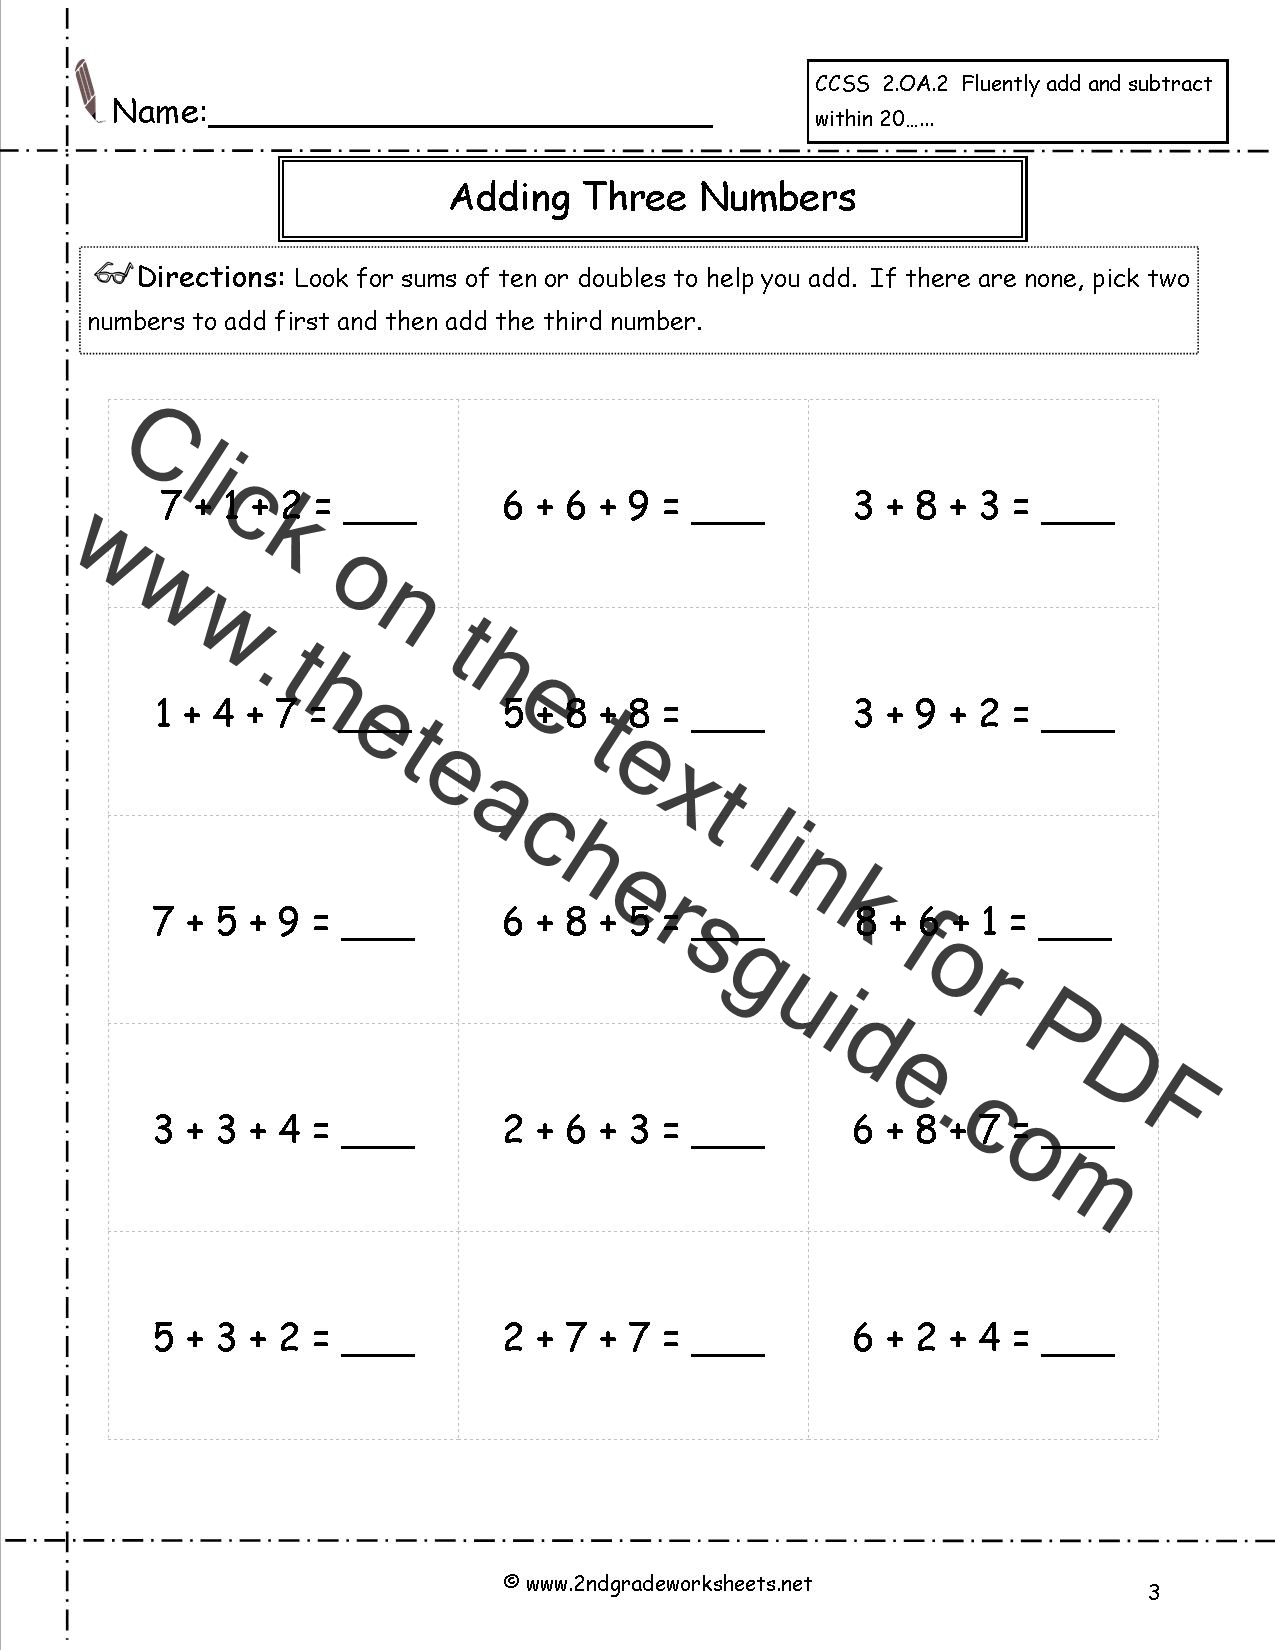 Adding Three or More Single Digits Addition Worksheets